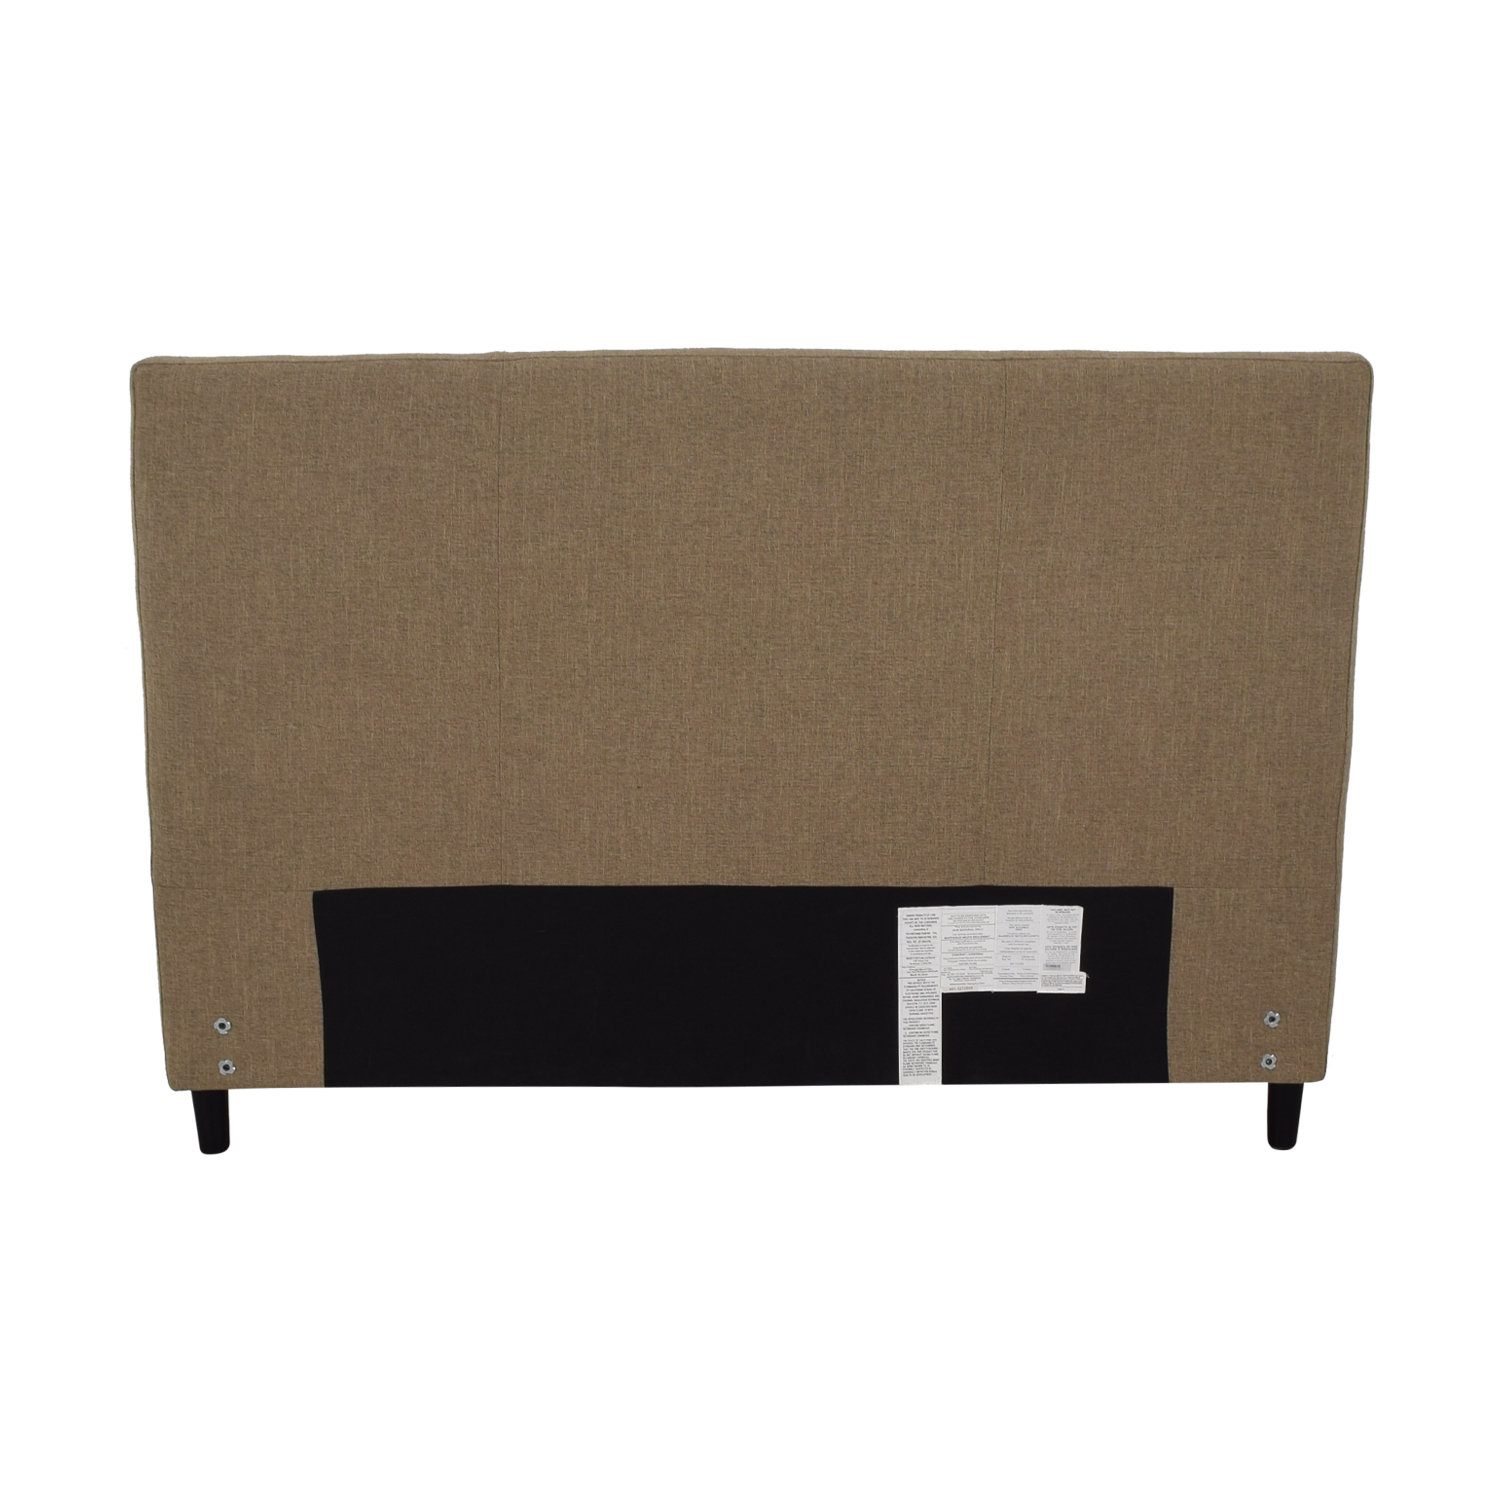 Crate & Barrel Crate & Barrel Lowe Khaki Upholstered Queen Headboard dimensions